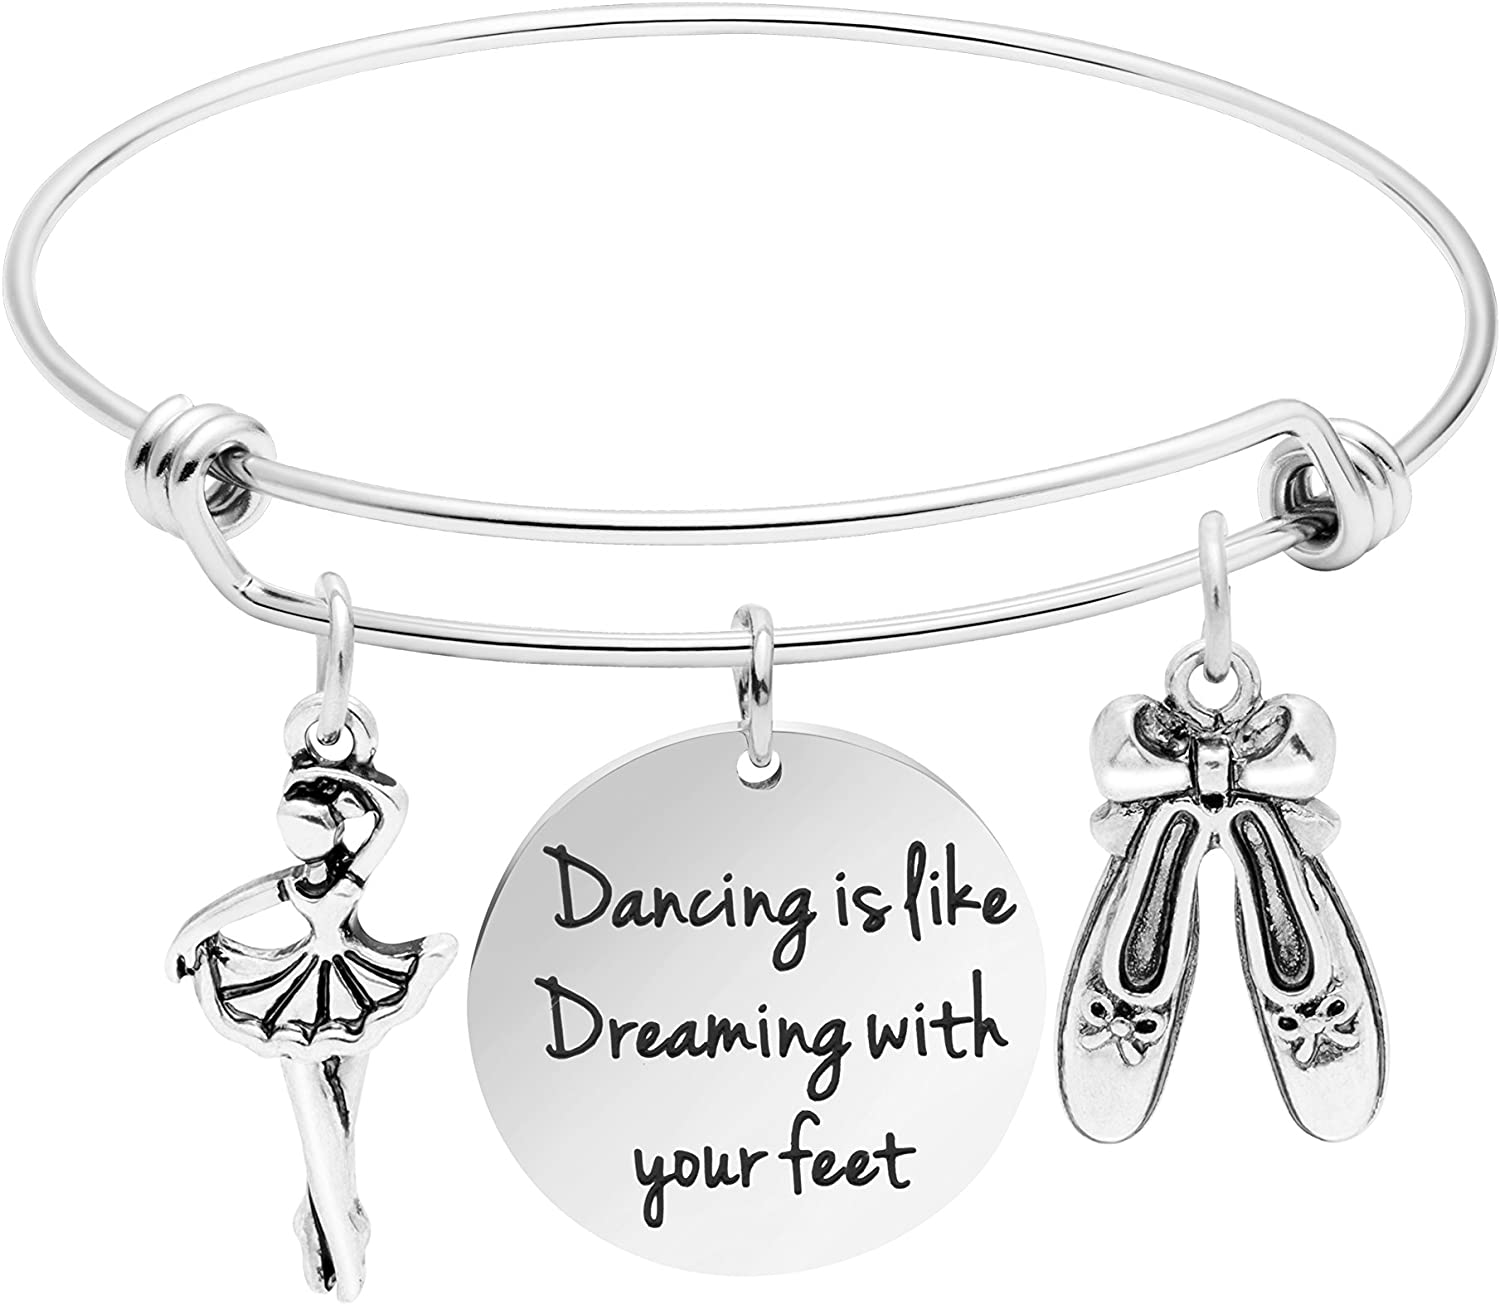 Awegift Inspirational Bangle Bracelet for Women Girls Stainless Steel Motivational Encourage Jewelry Birthday Mother's Day Christmas for Mother Father Daughter Brother Sister